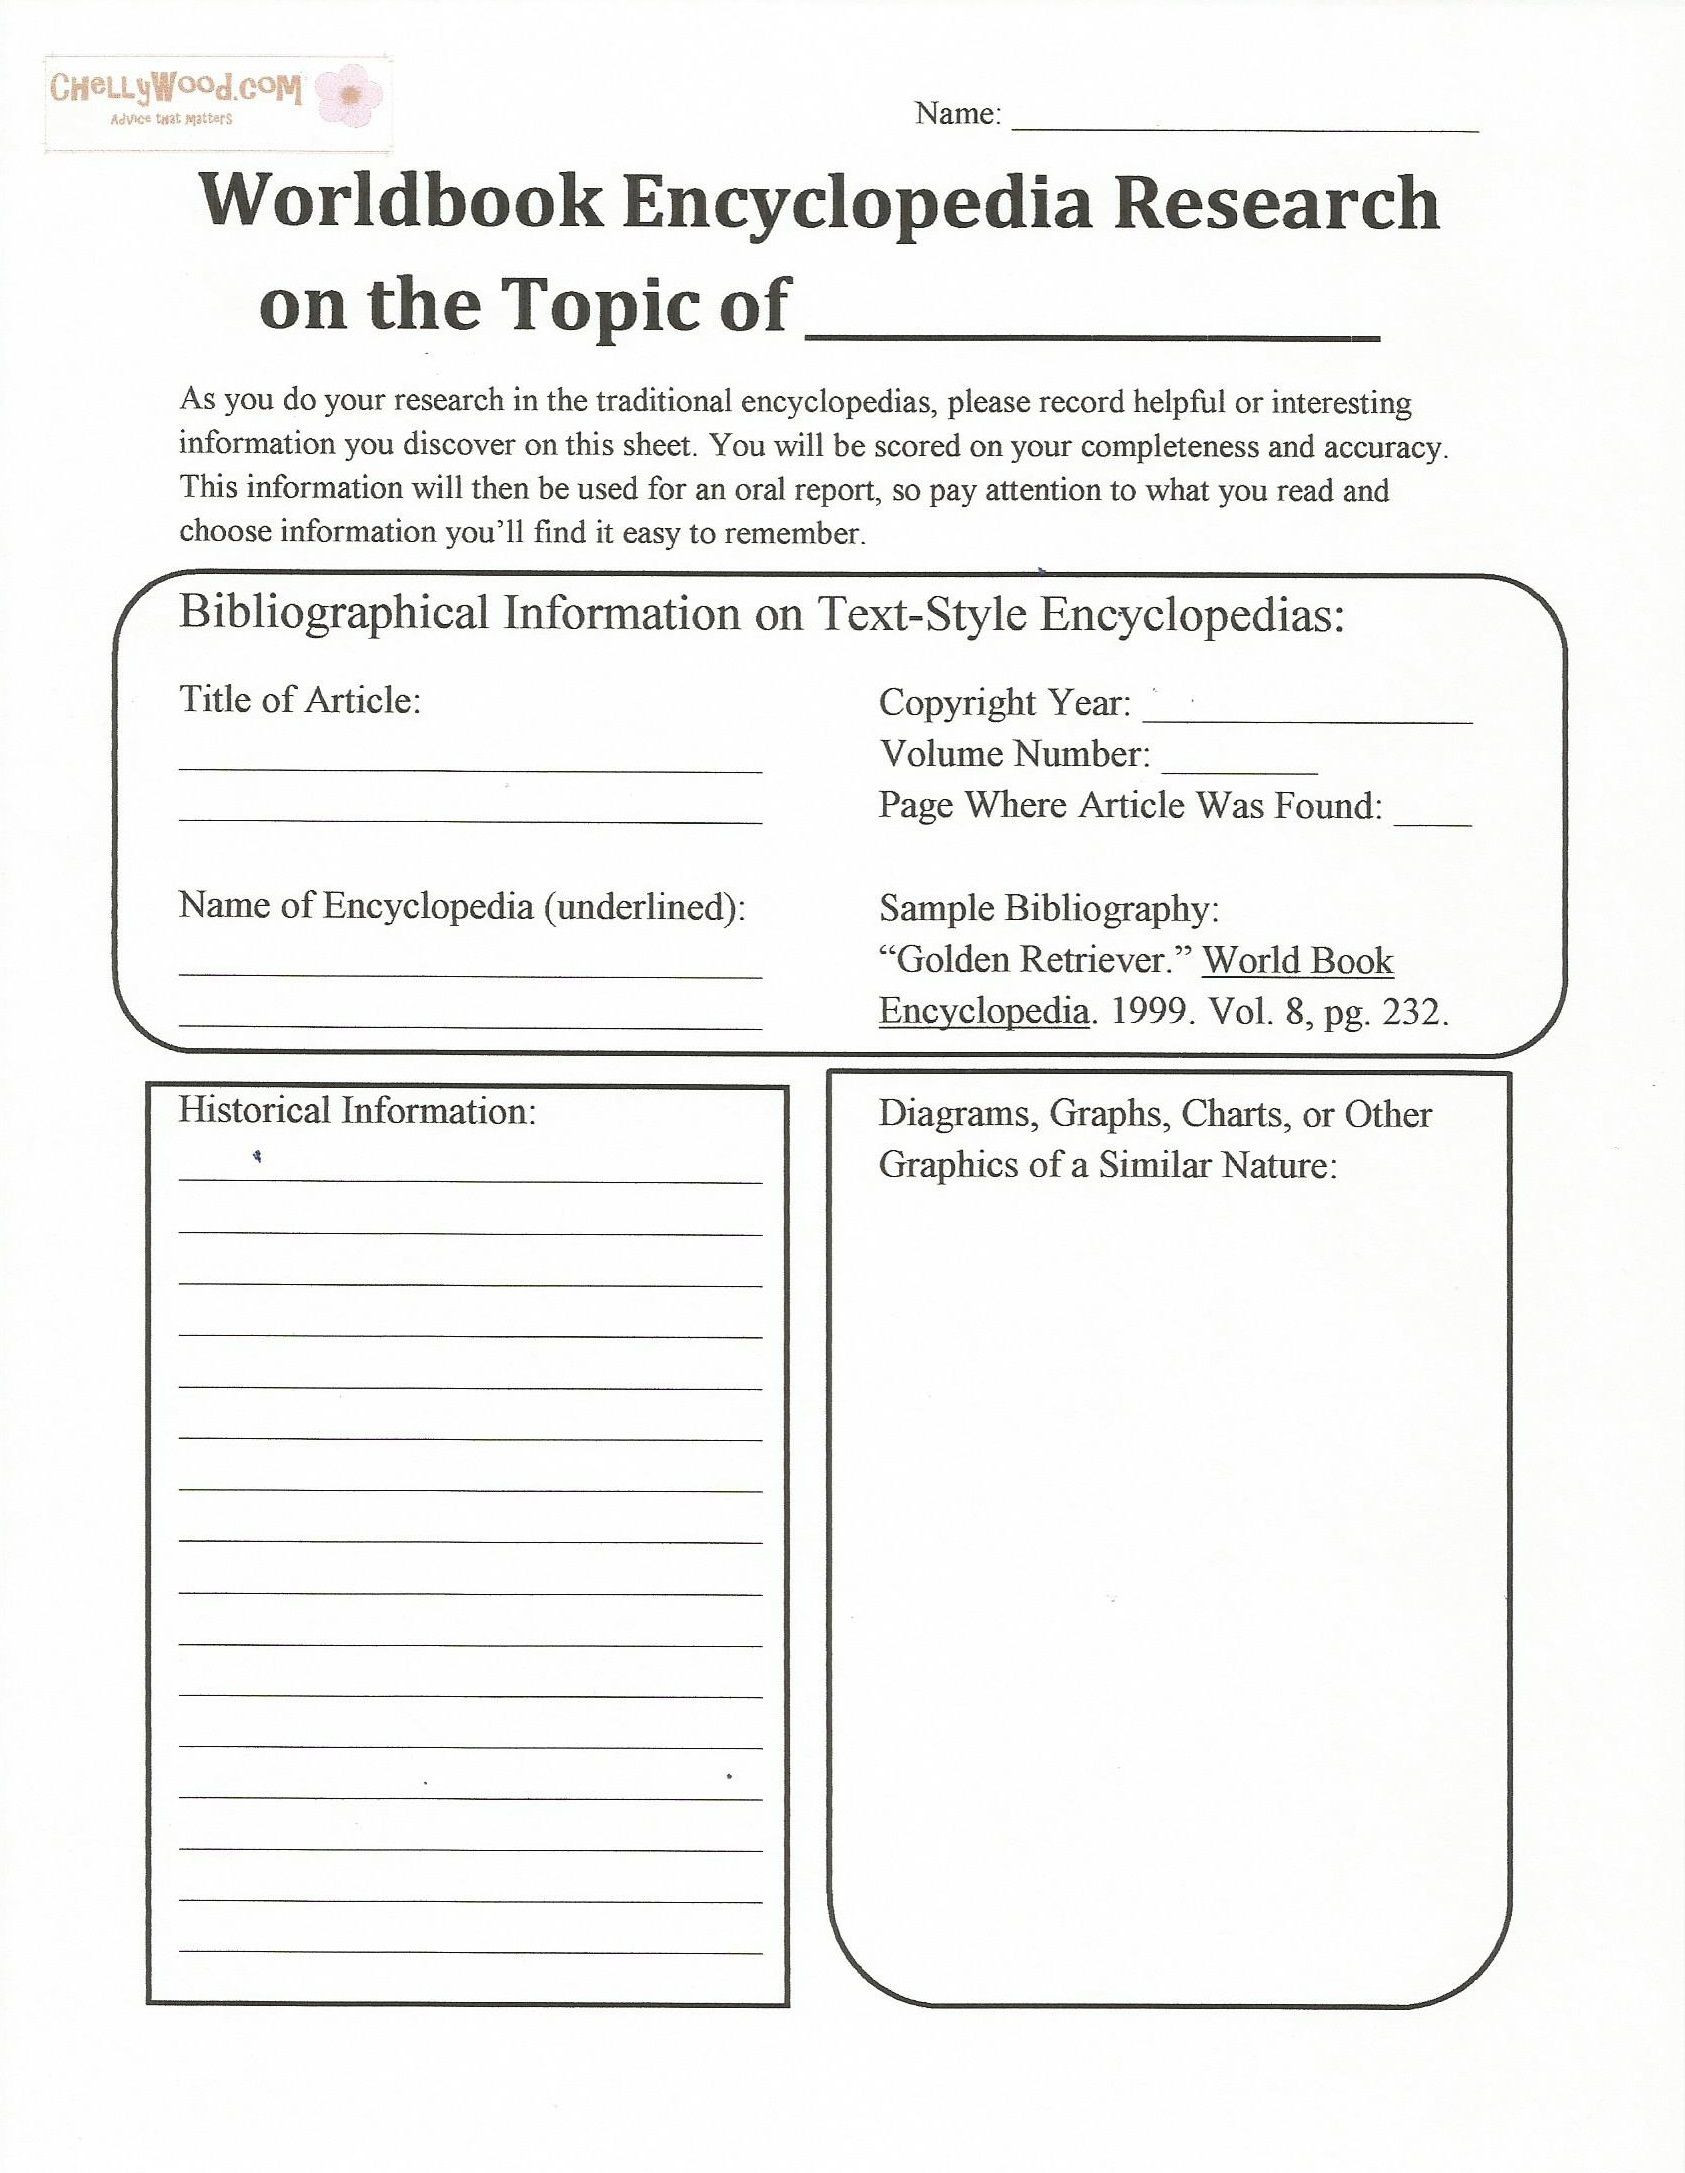 Advisory Worksheets for Middle School Worldbook Research Worksheet for Middle Schoolers Pg 1 Es